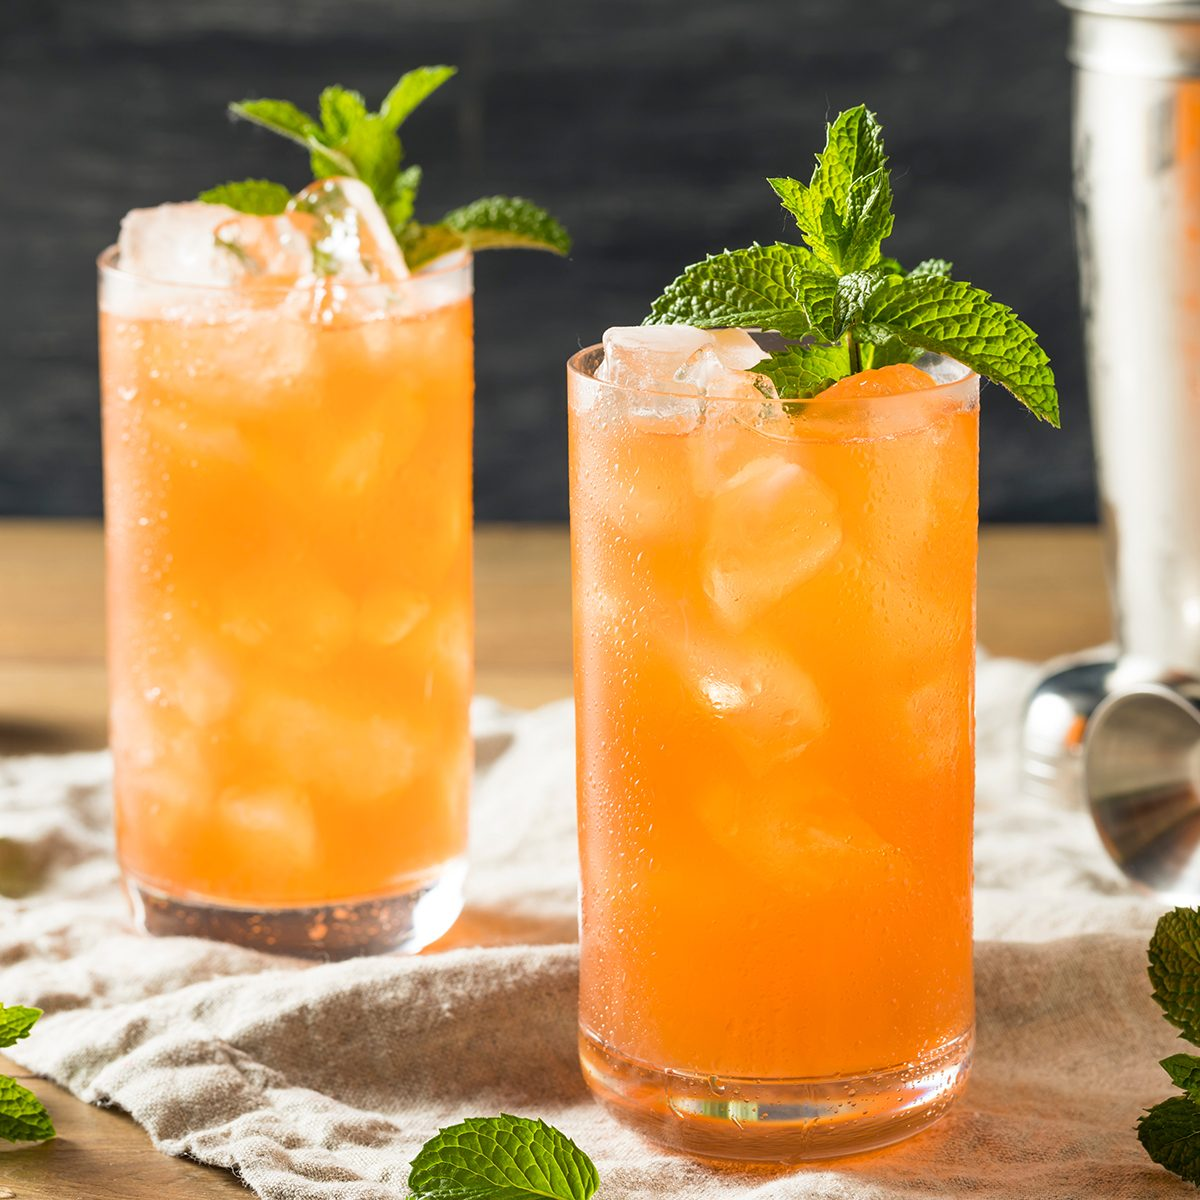 Sweet Tropical Zombie Cocktail with Rum and Mint